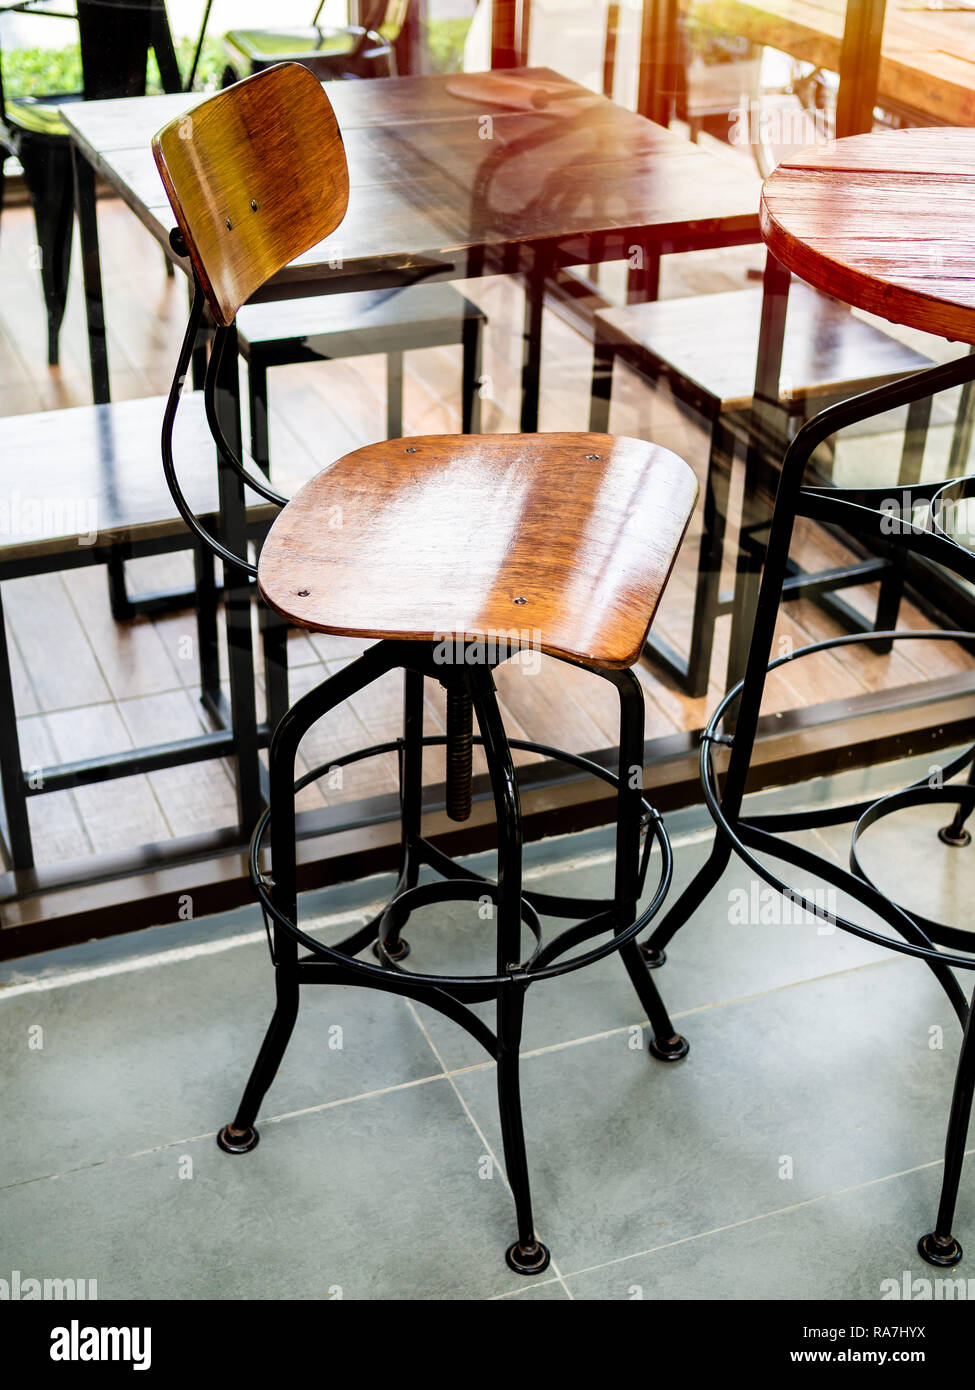 Phenomenal Wooden Vintage Bar Stool With Black Steel Legs In Cafe Cjindustries Chair Design For Home Cjindustriesco